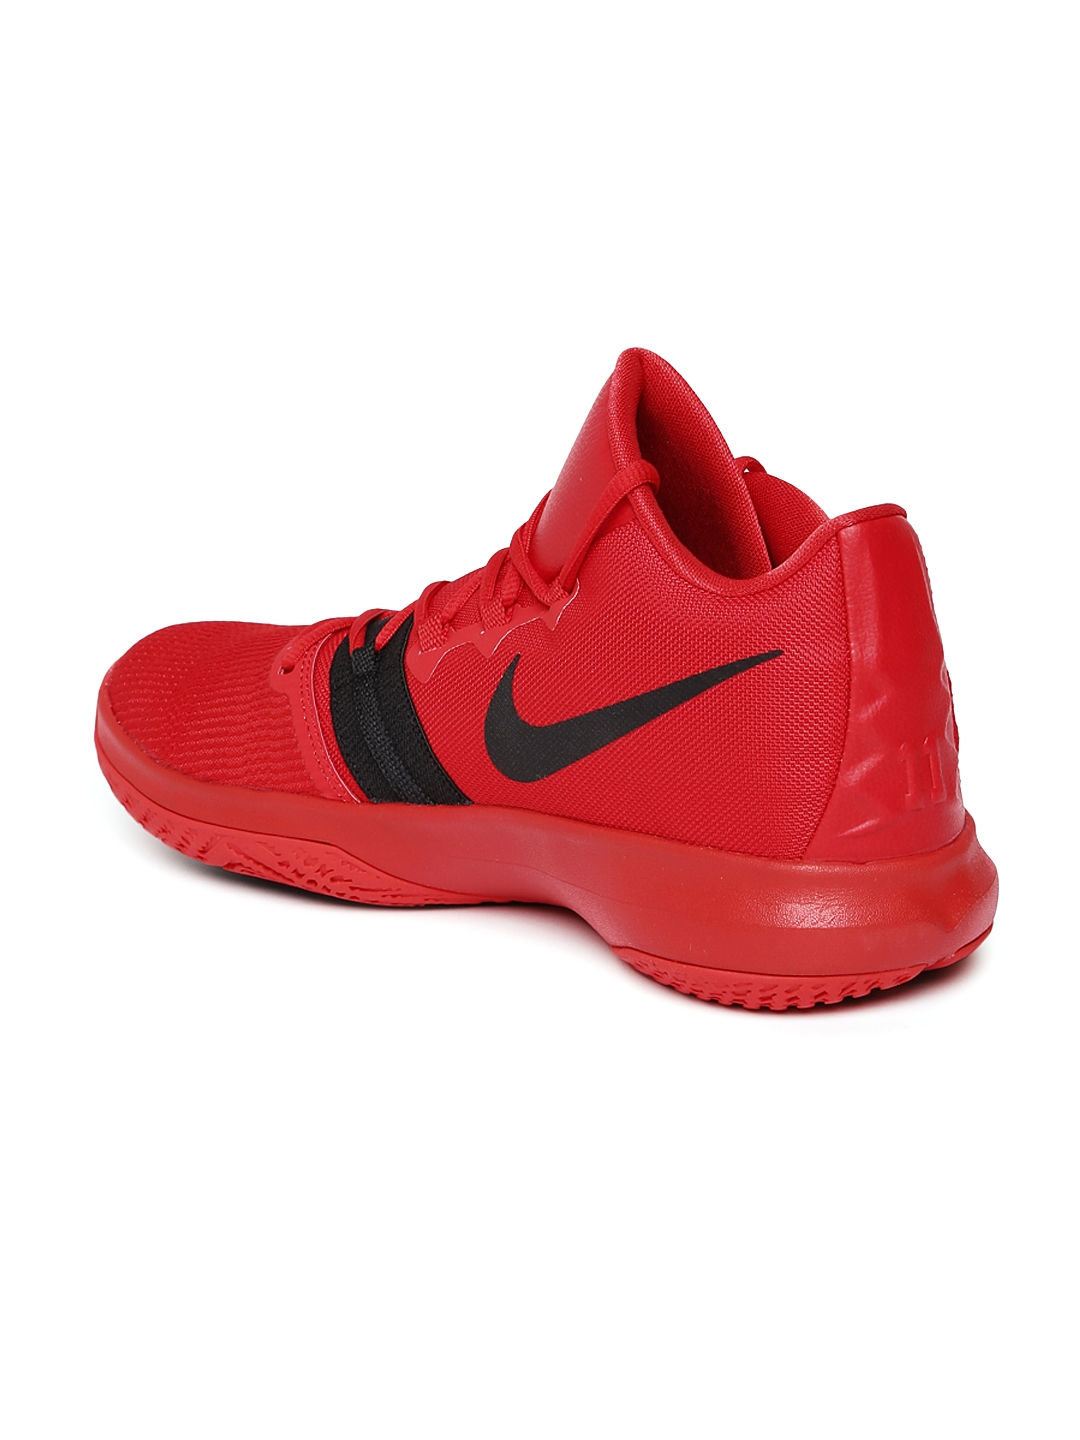 brand new 78e8c 69051 Nike Men Red KYRIE FLYTRAP Basketball Shoes